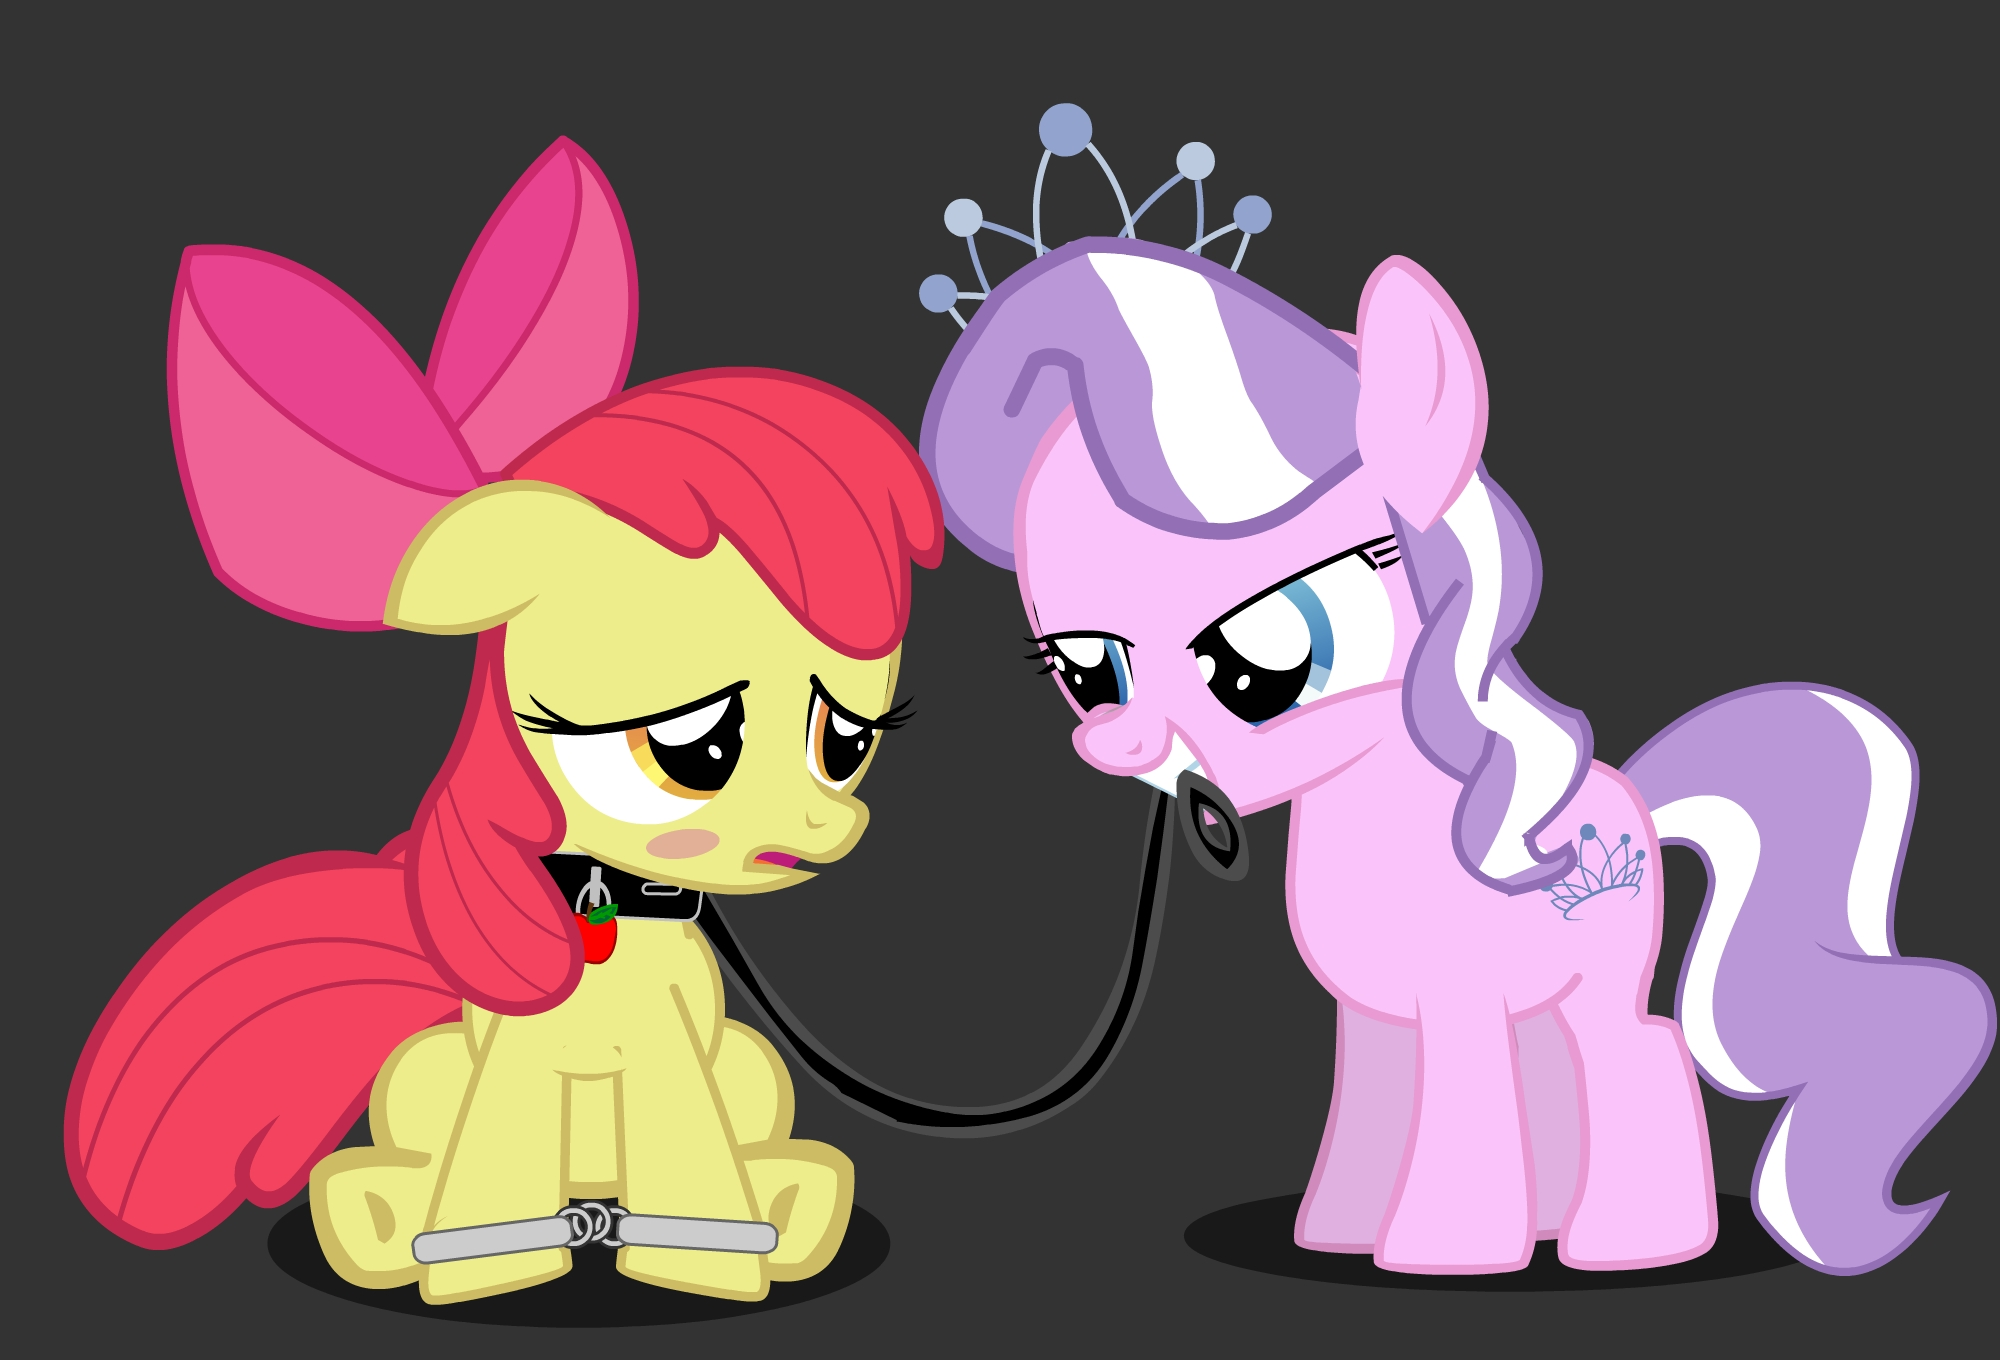 e621 apple_bloom_(mlp) blush collar cub cuffs cutie_mark diamond_tiara_(mlp) duo equine female feral friendship_is_magic handcuffs hi_res horse leash mammal my_little_pony pony ruxify shackles young